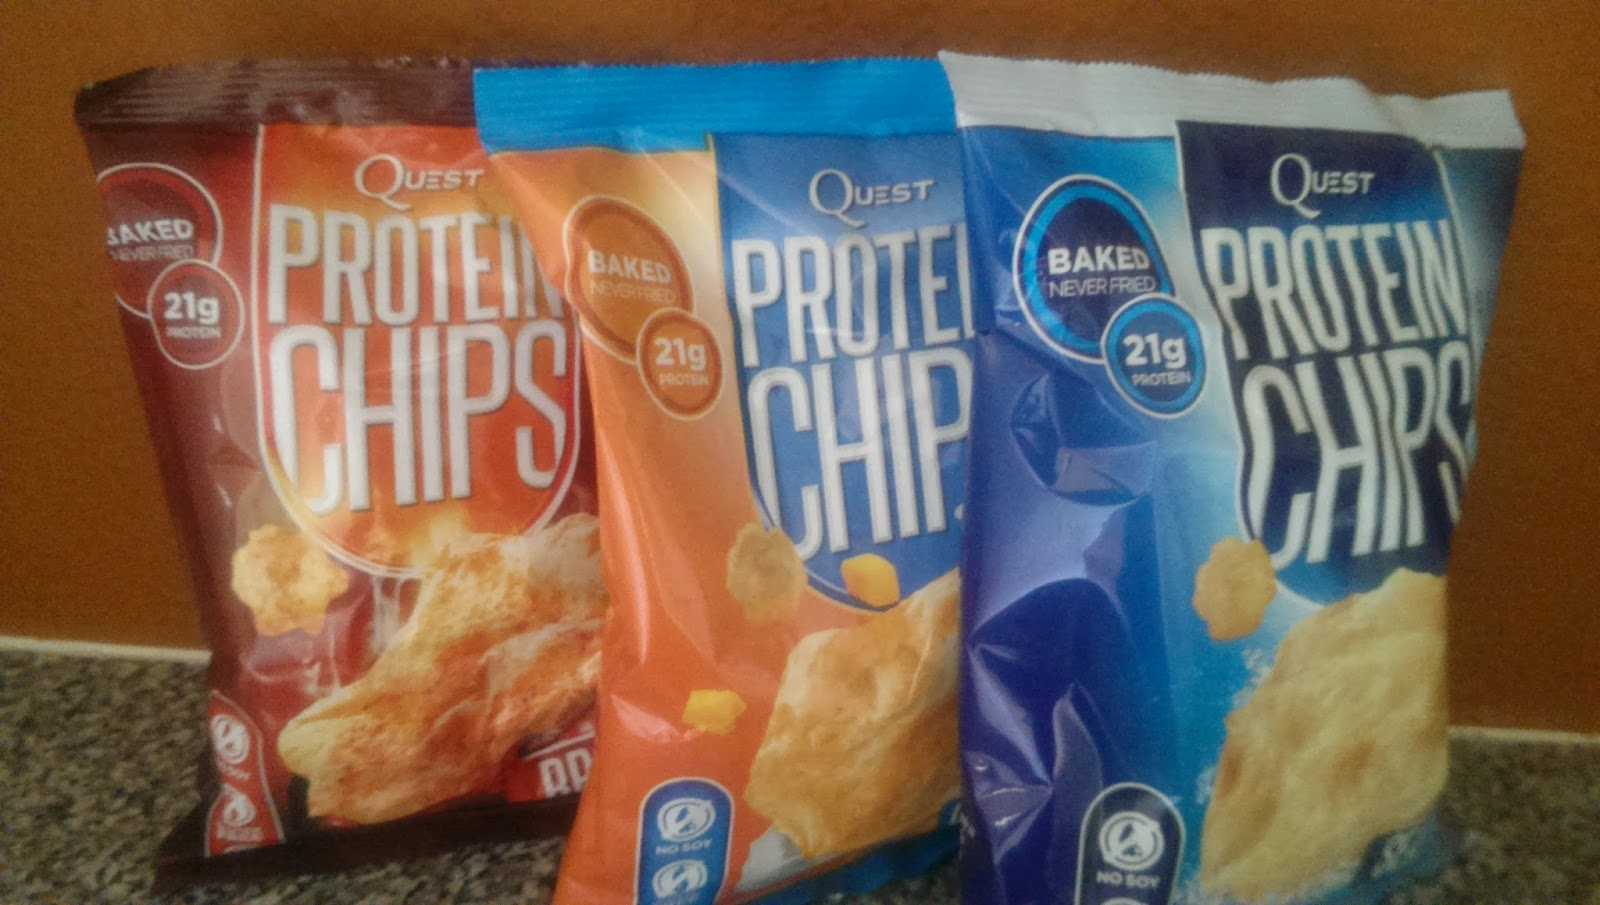 Protein%2BChips Quest Protein Chips Review - Healthy Chips to Eat